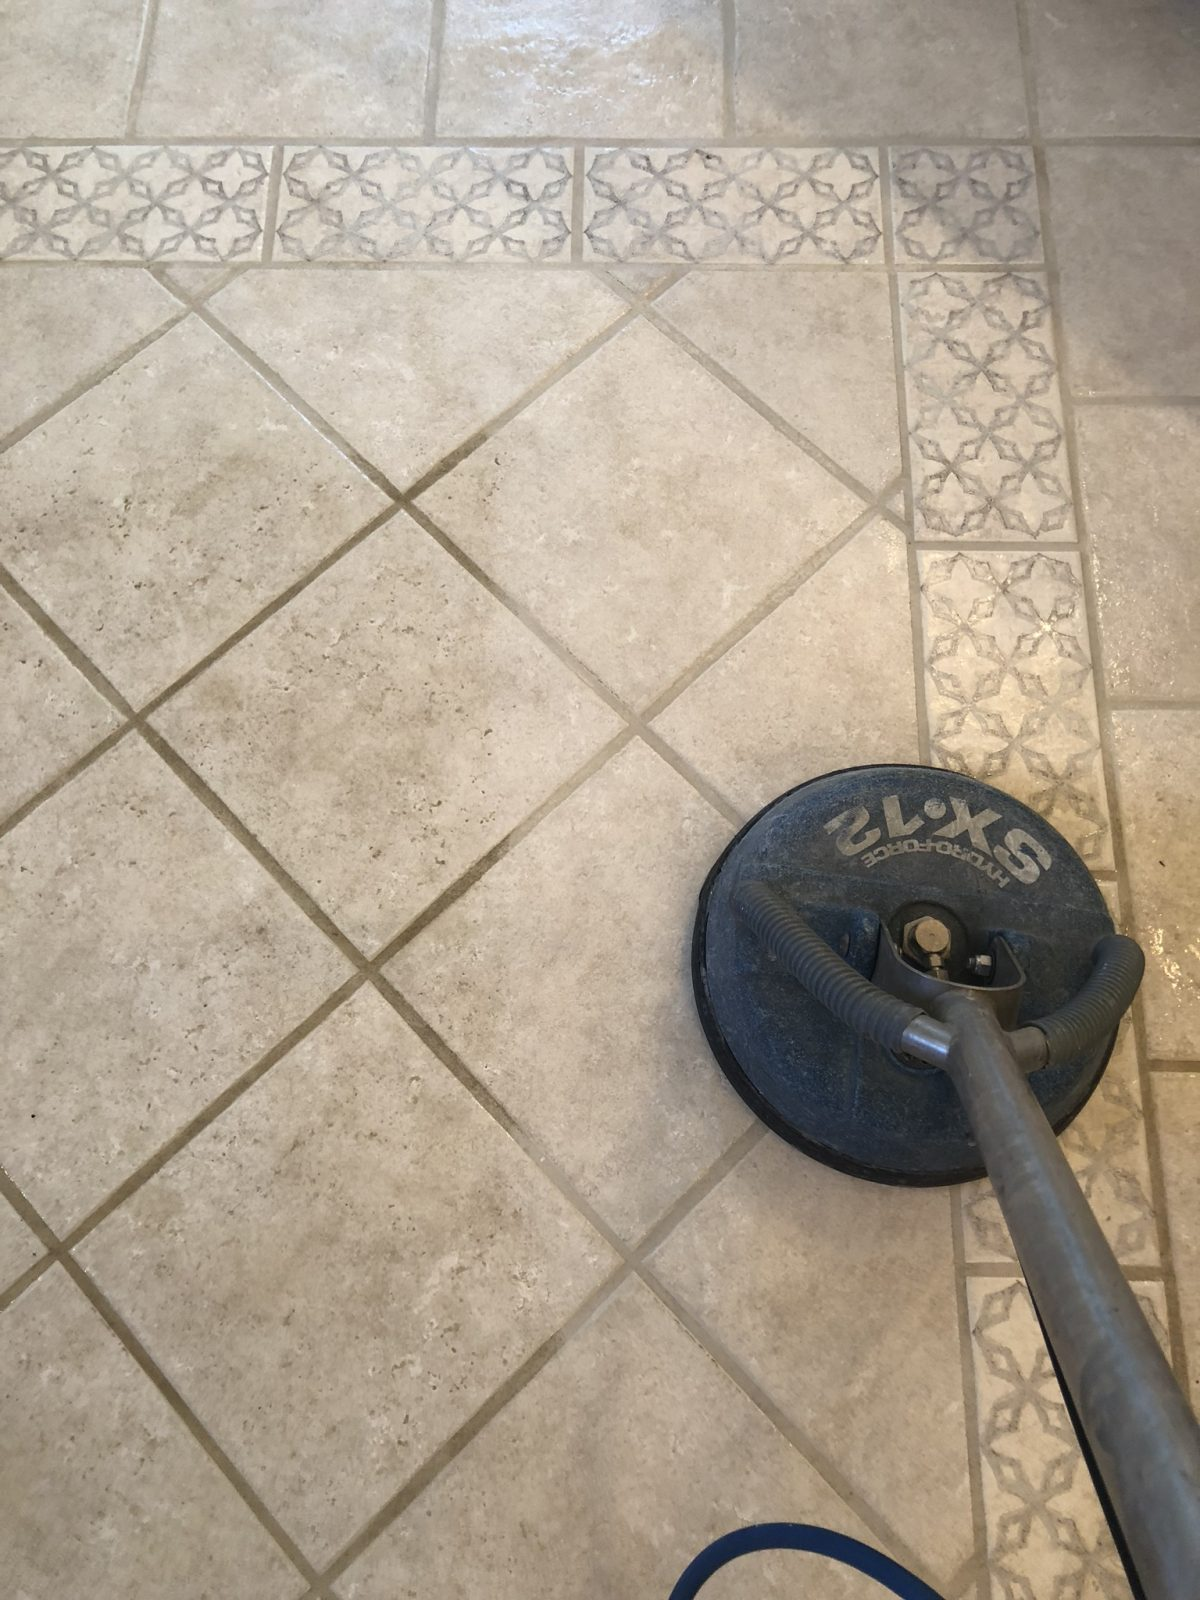 Professional Tile & Grout Cleaning Amberley Ohio by Howards Cleaning Service